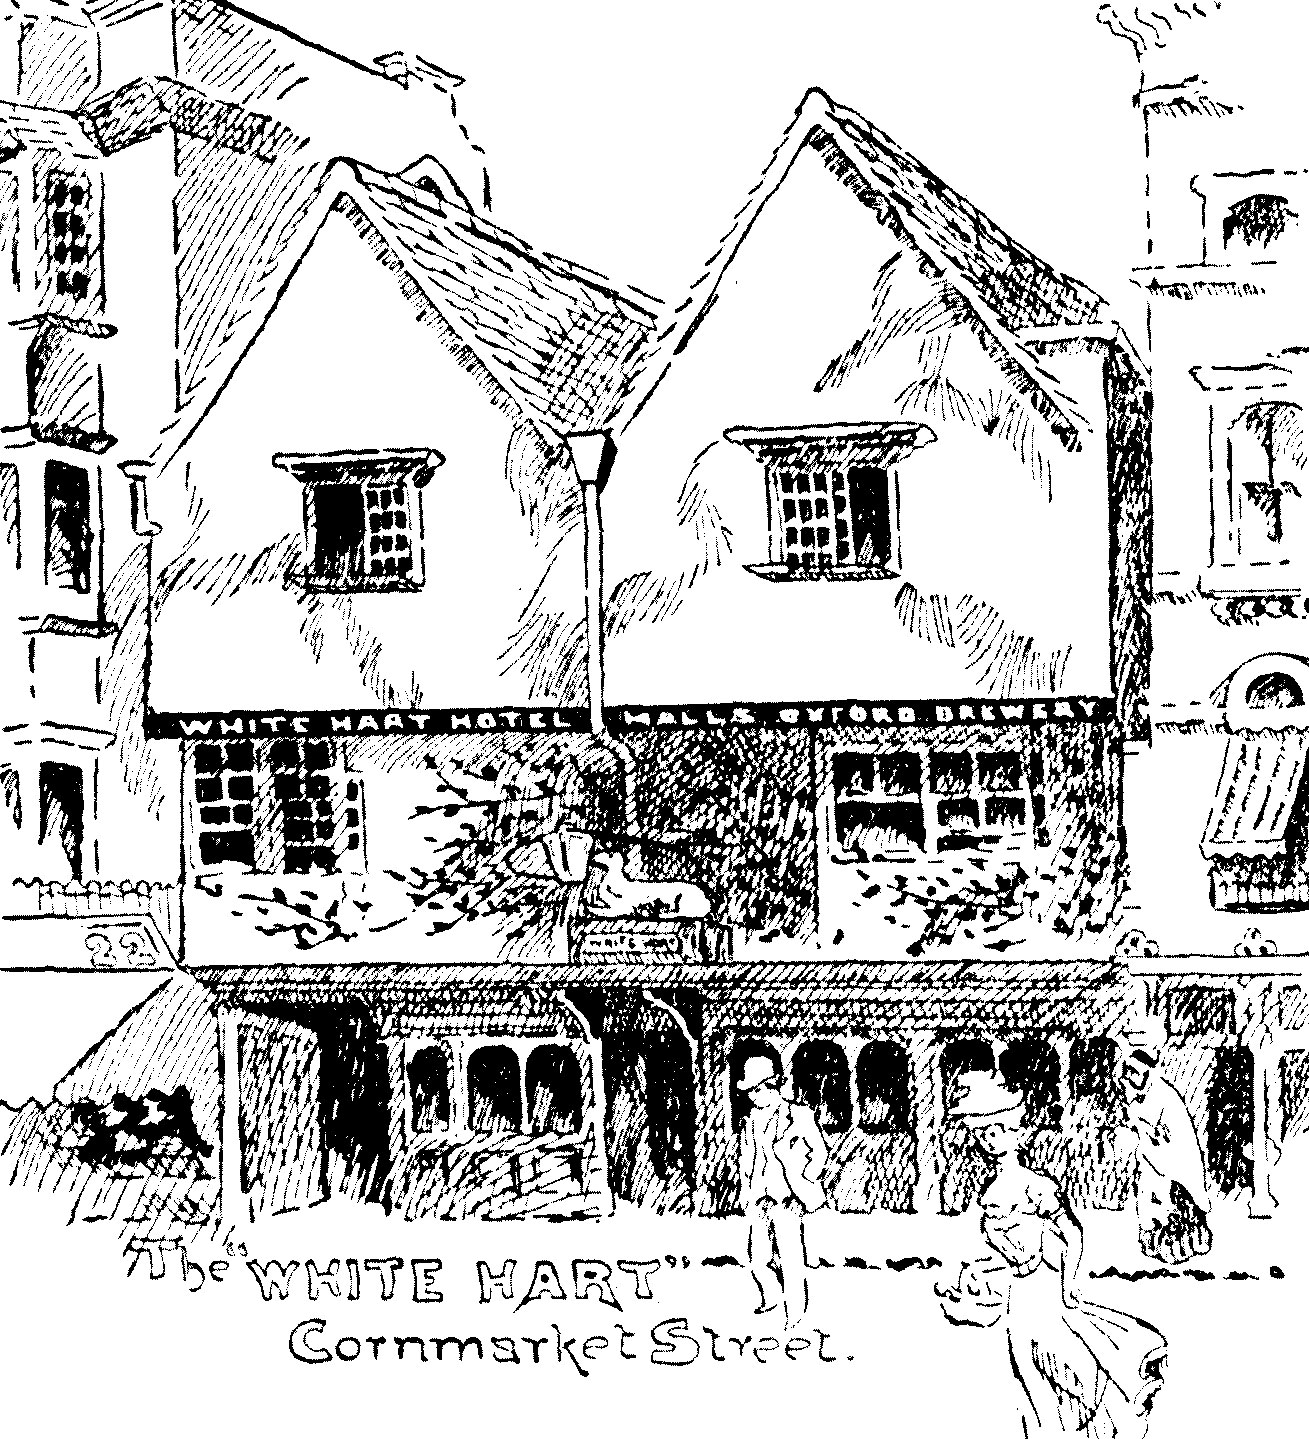 White Hart Hotel, JOJ 15 July 1899